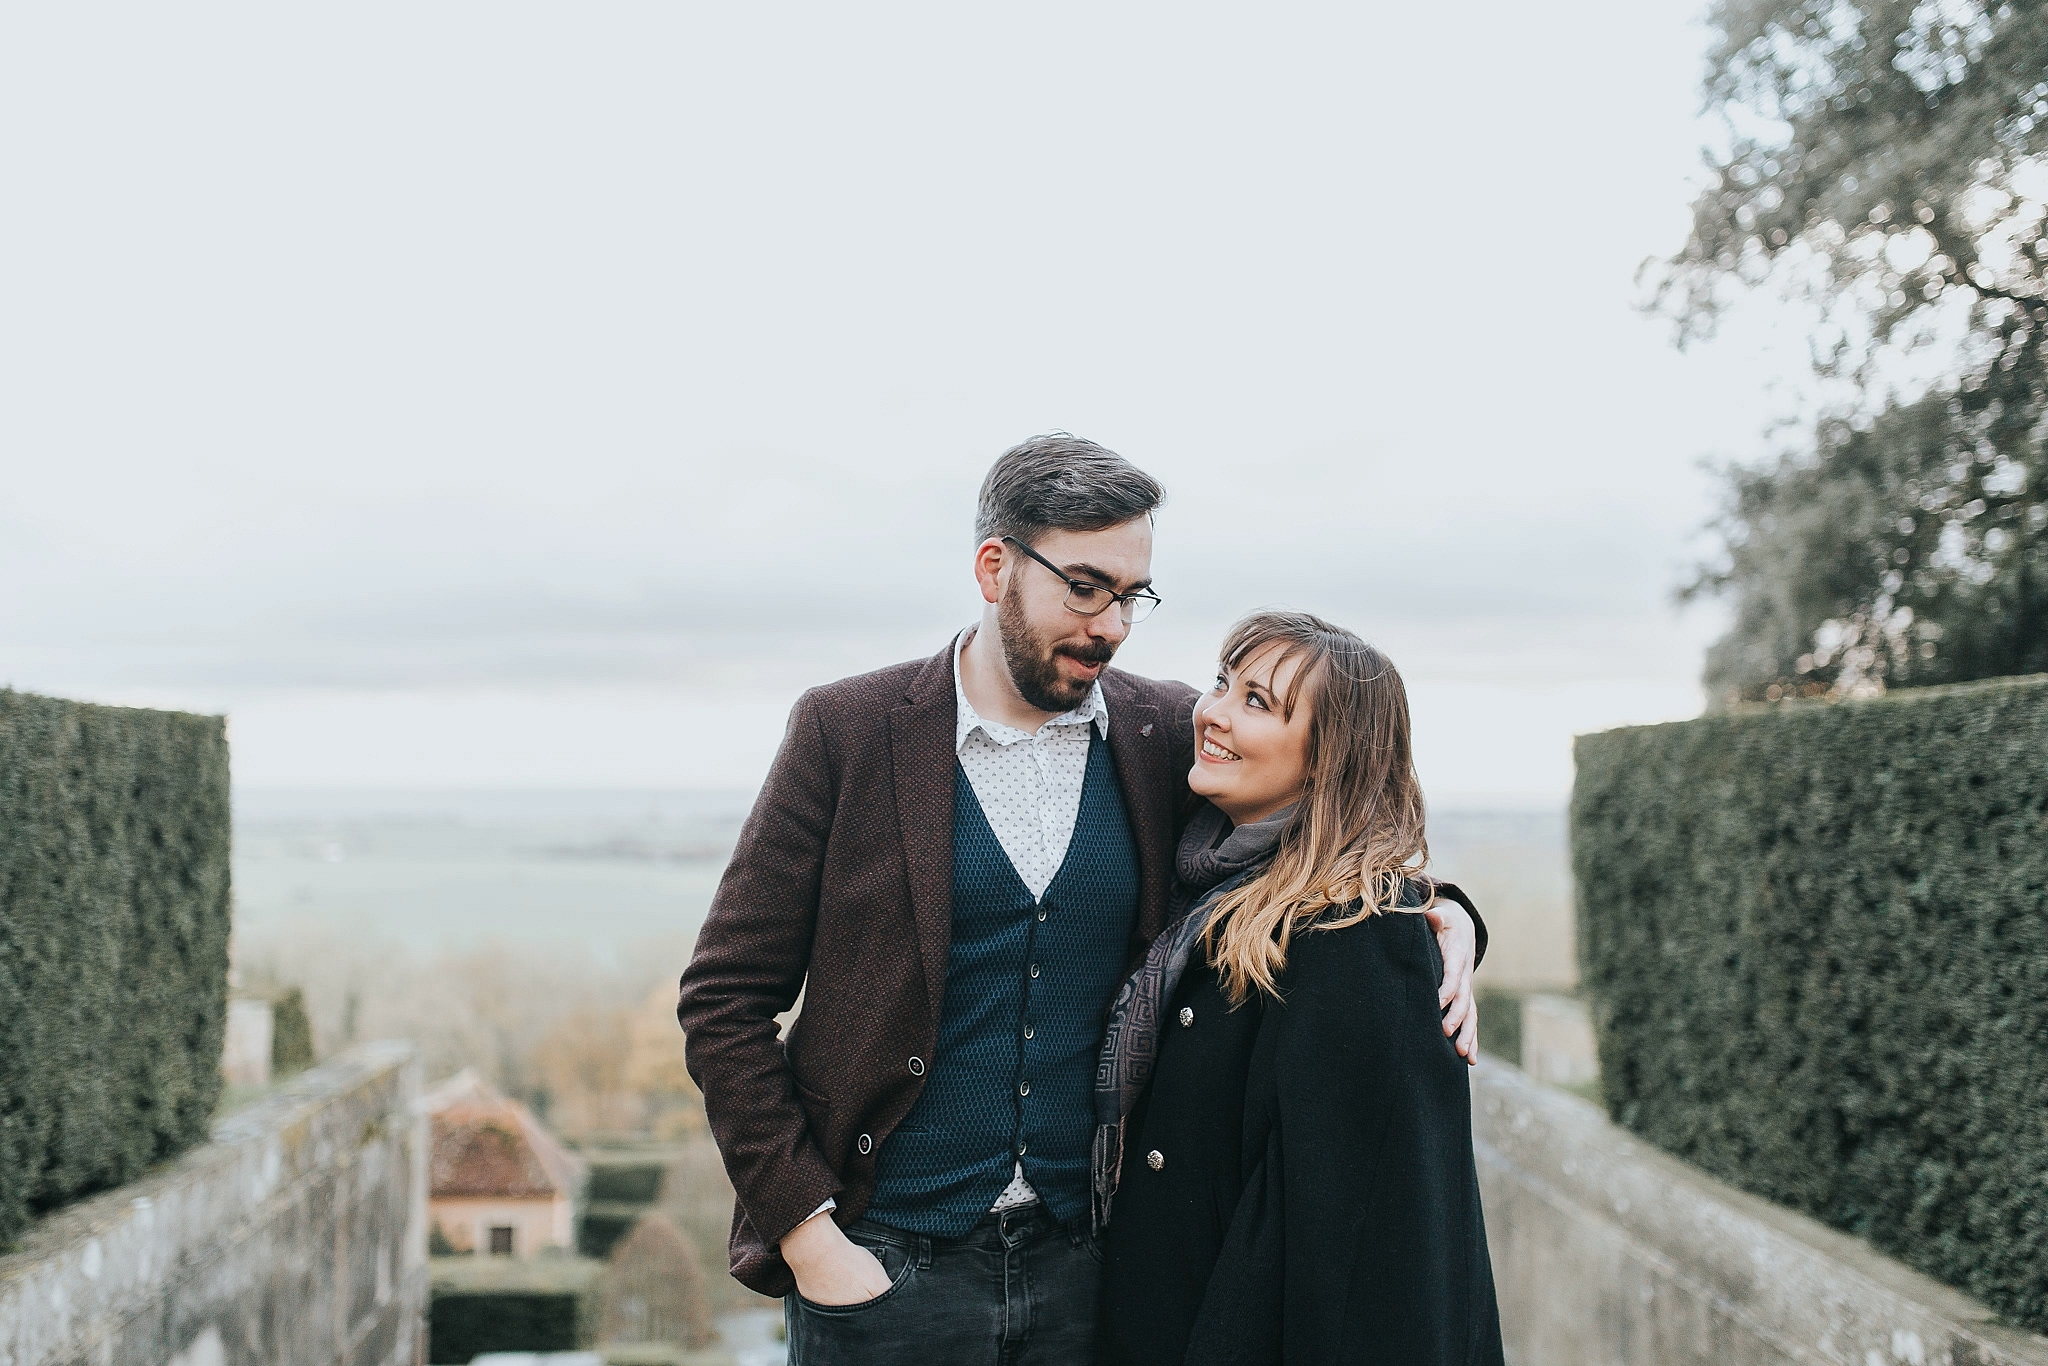 Port Lympne Photography engagement photographer kent Emily Crutcher 20